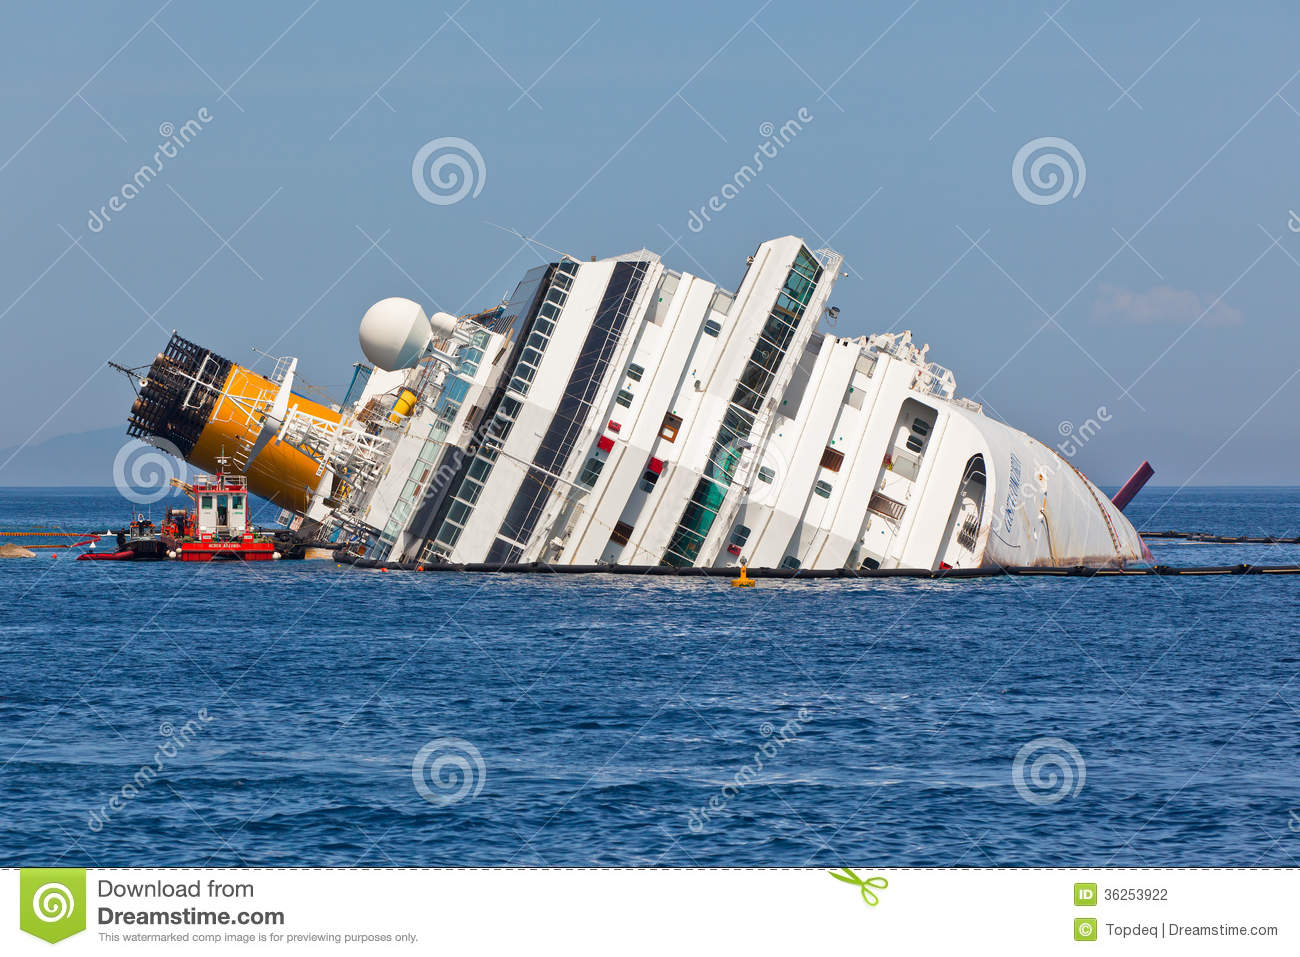 costa concordia cruise ship after shipwreck - Cruise Ship Photographer